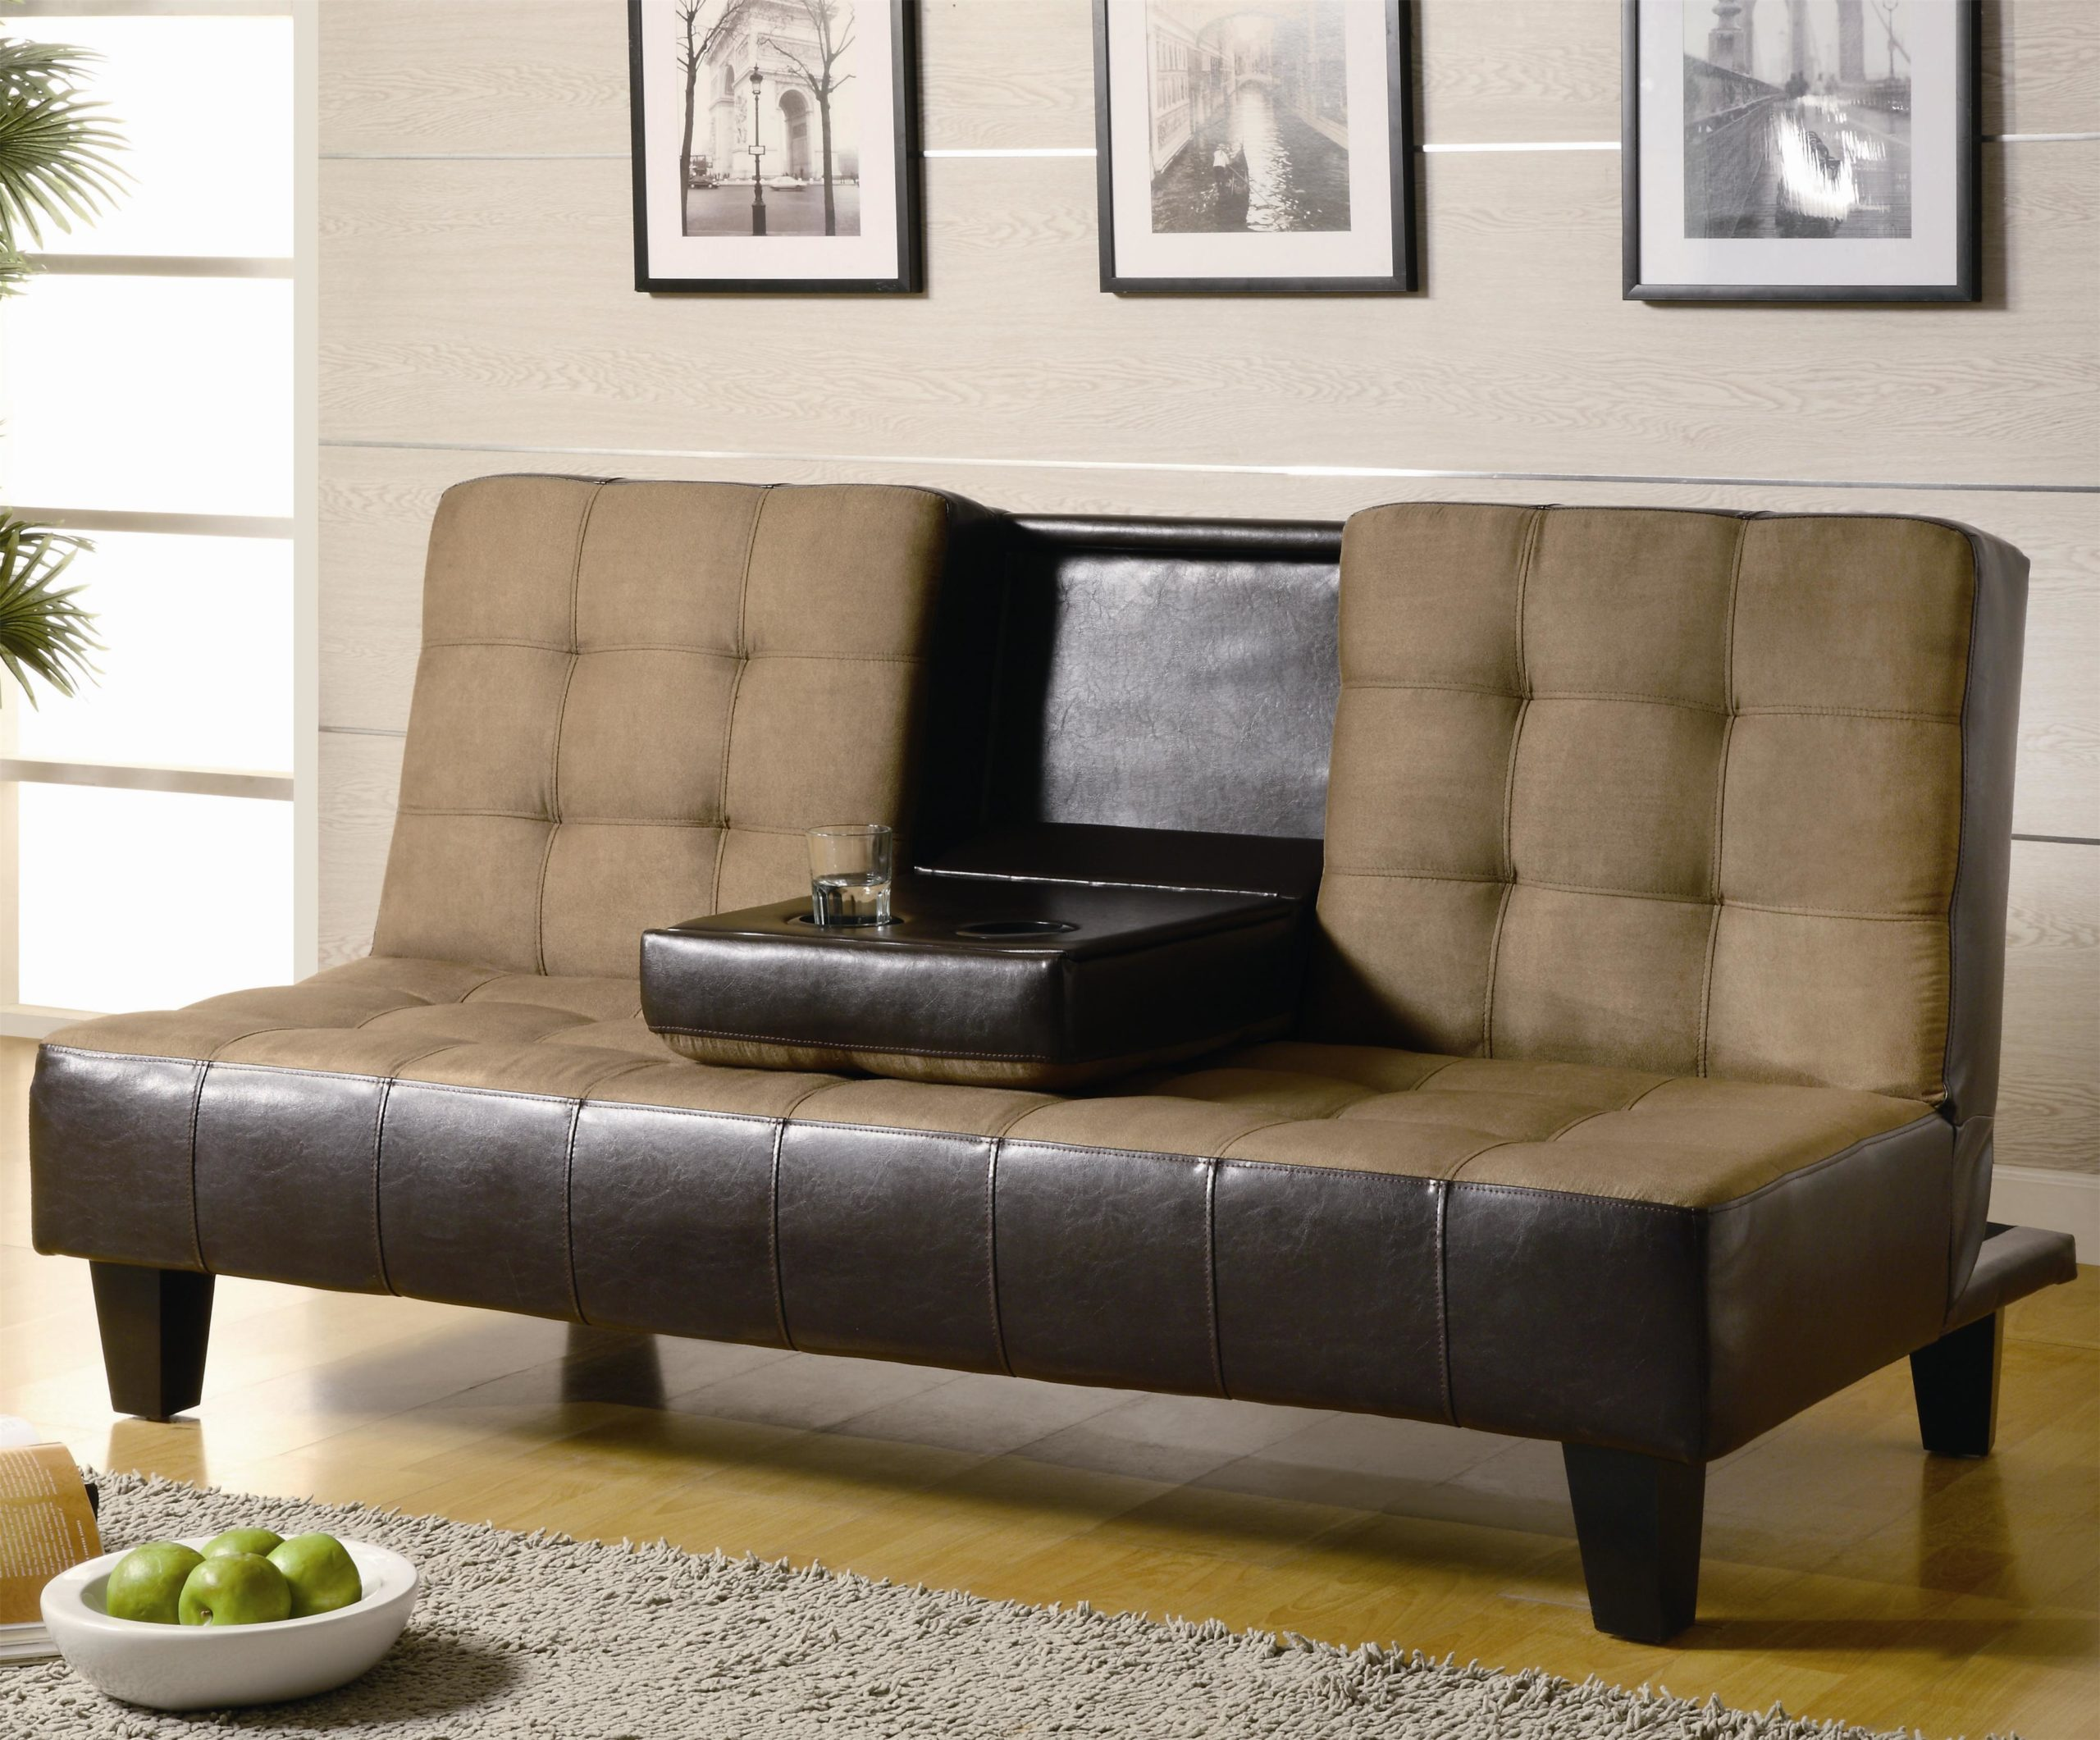 ContempoContemporary Two Tone Convertible Sofa Bed with Drop Down Console in up position